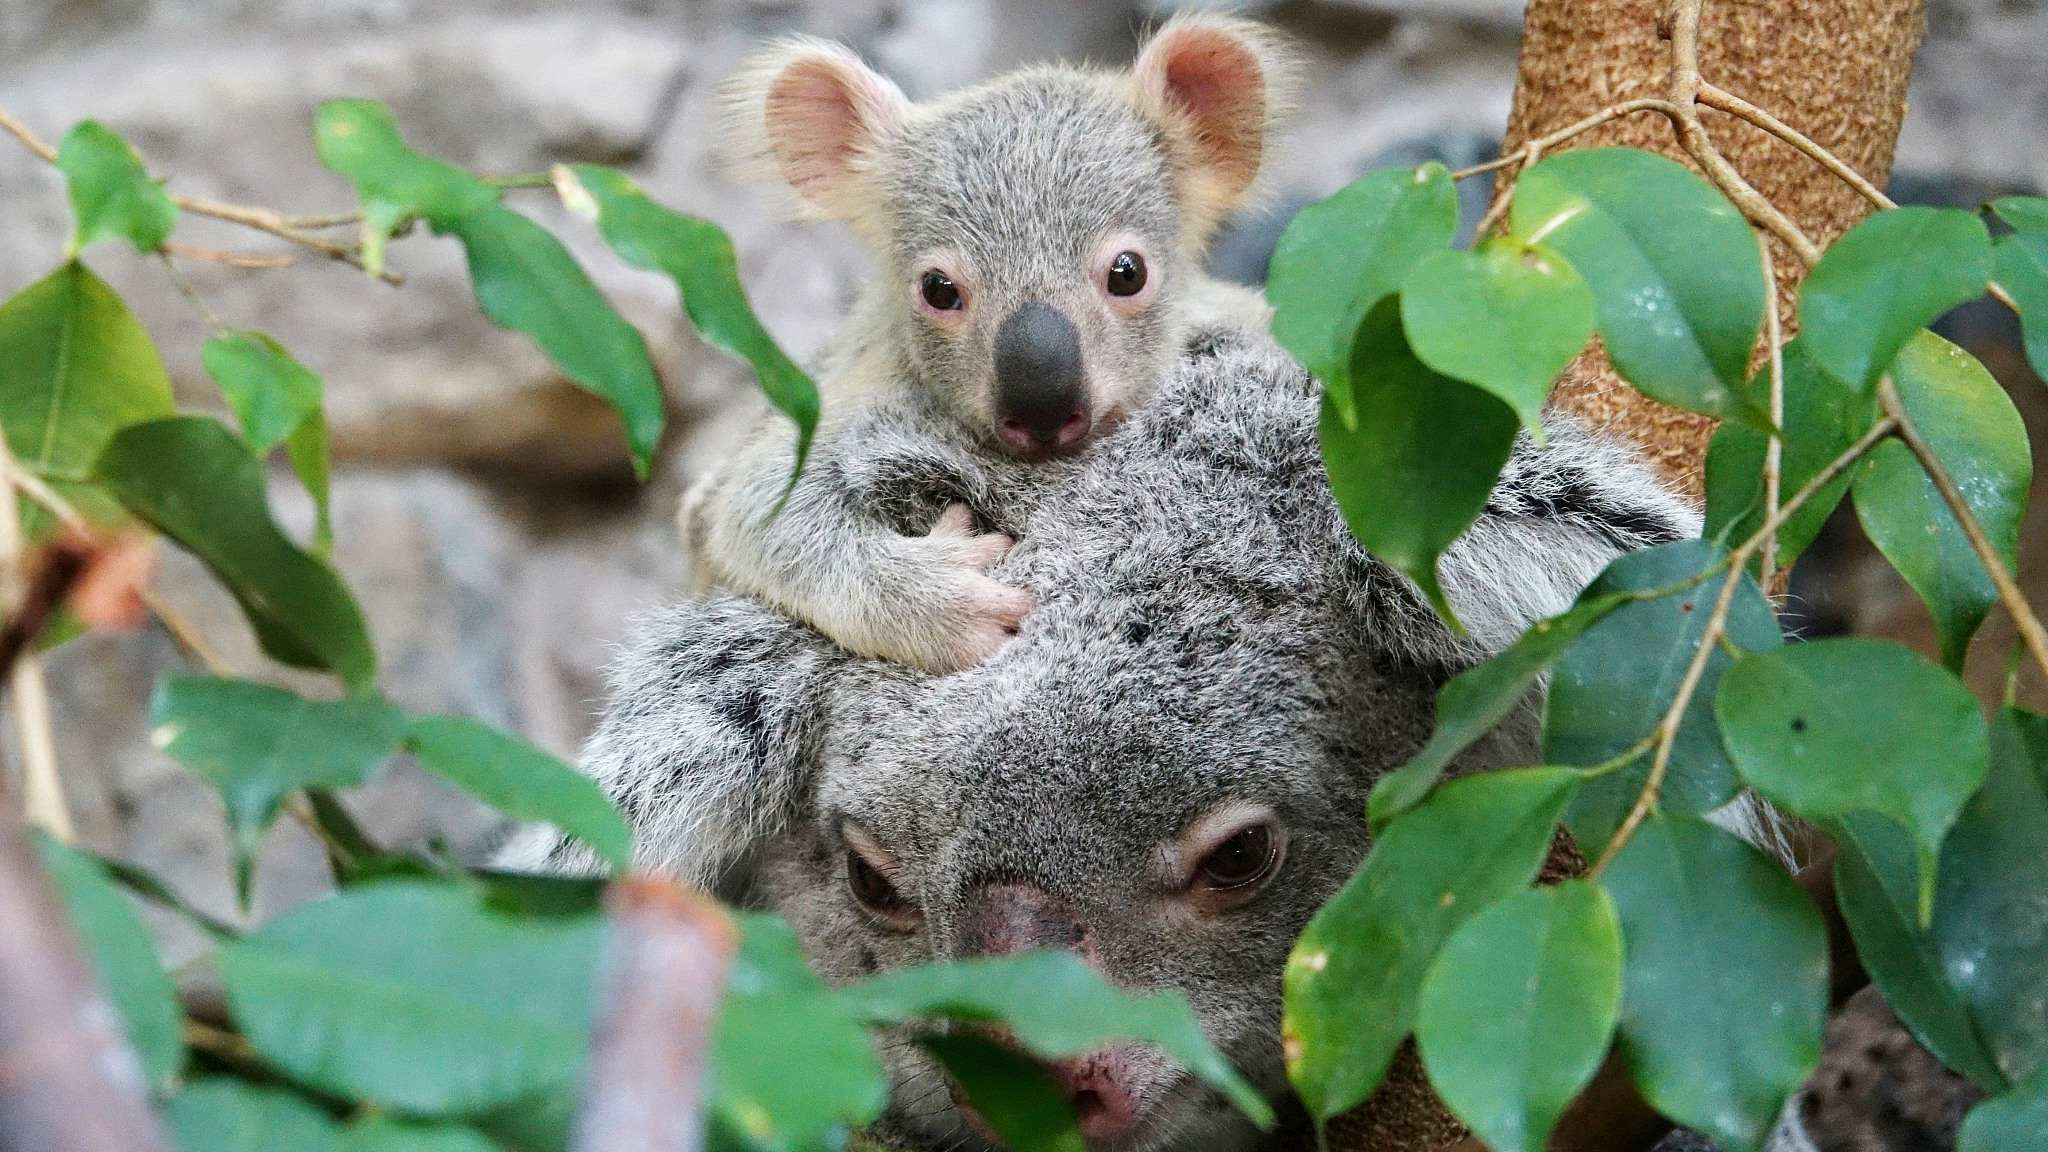 Study: Koalas to be extinct by 2050 in New South Wales, Australia